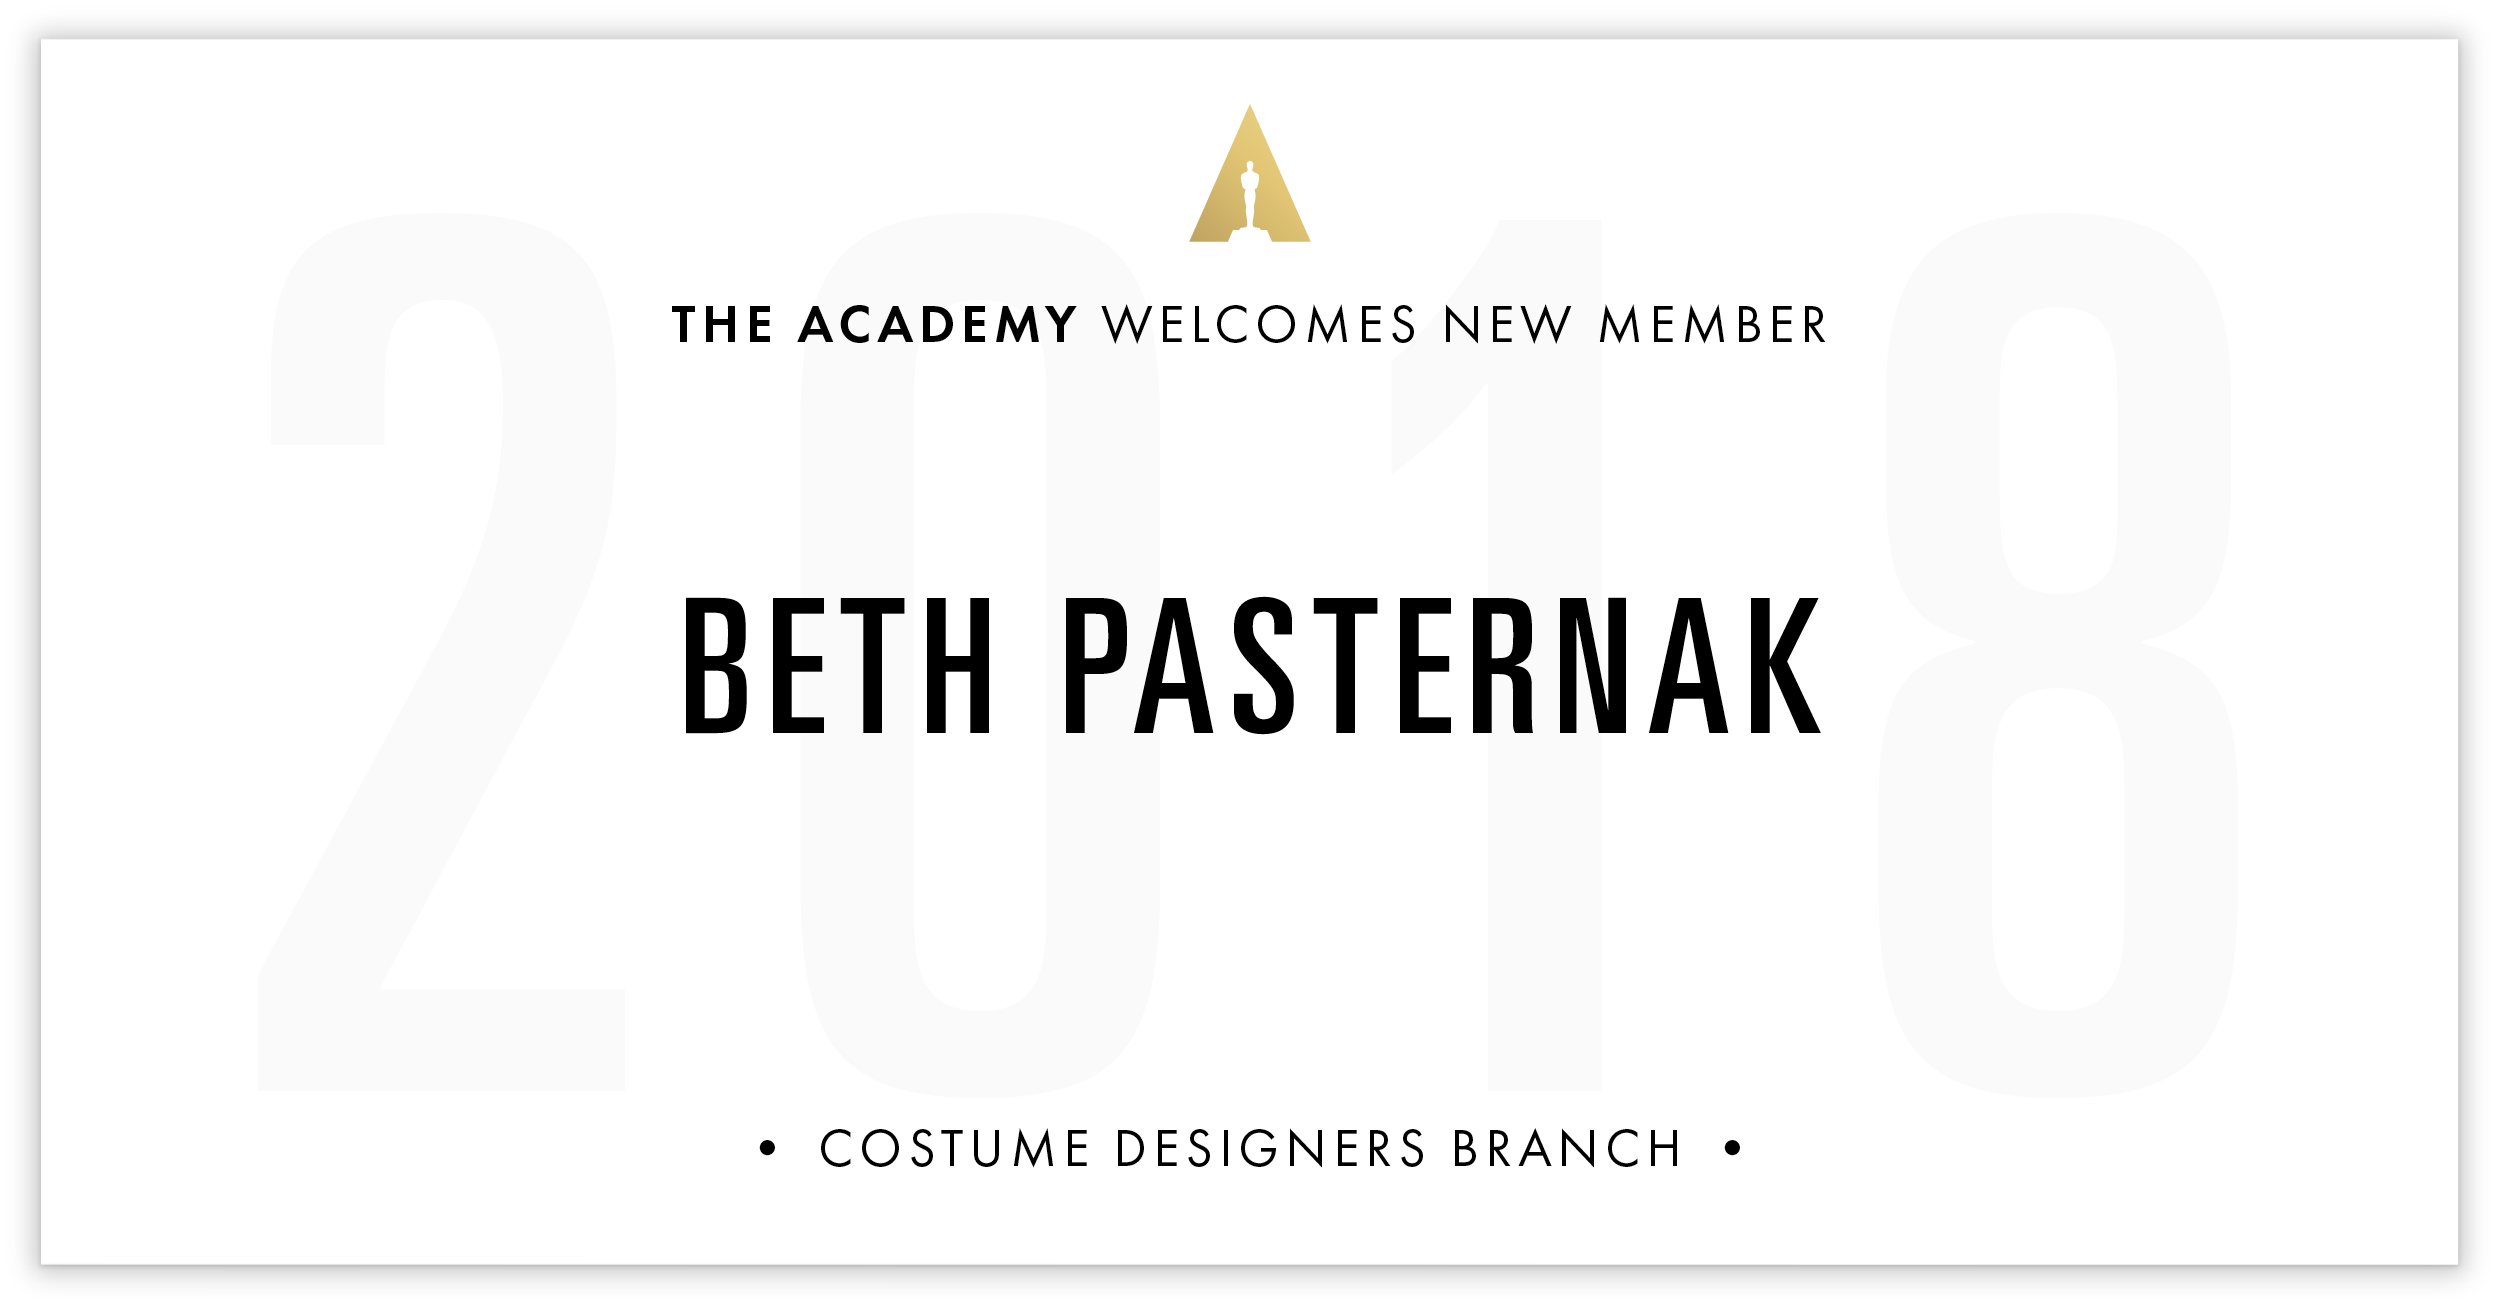 Beth Pasternak is invited!